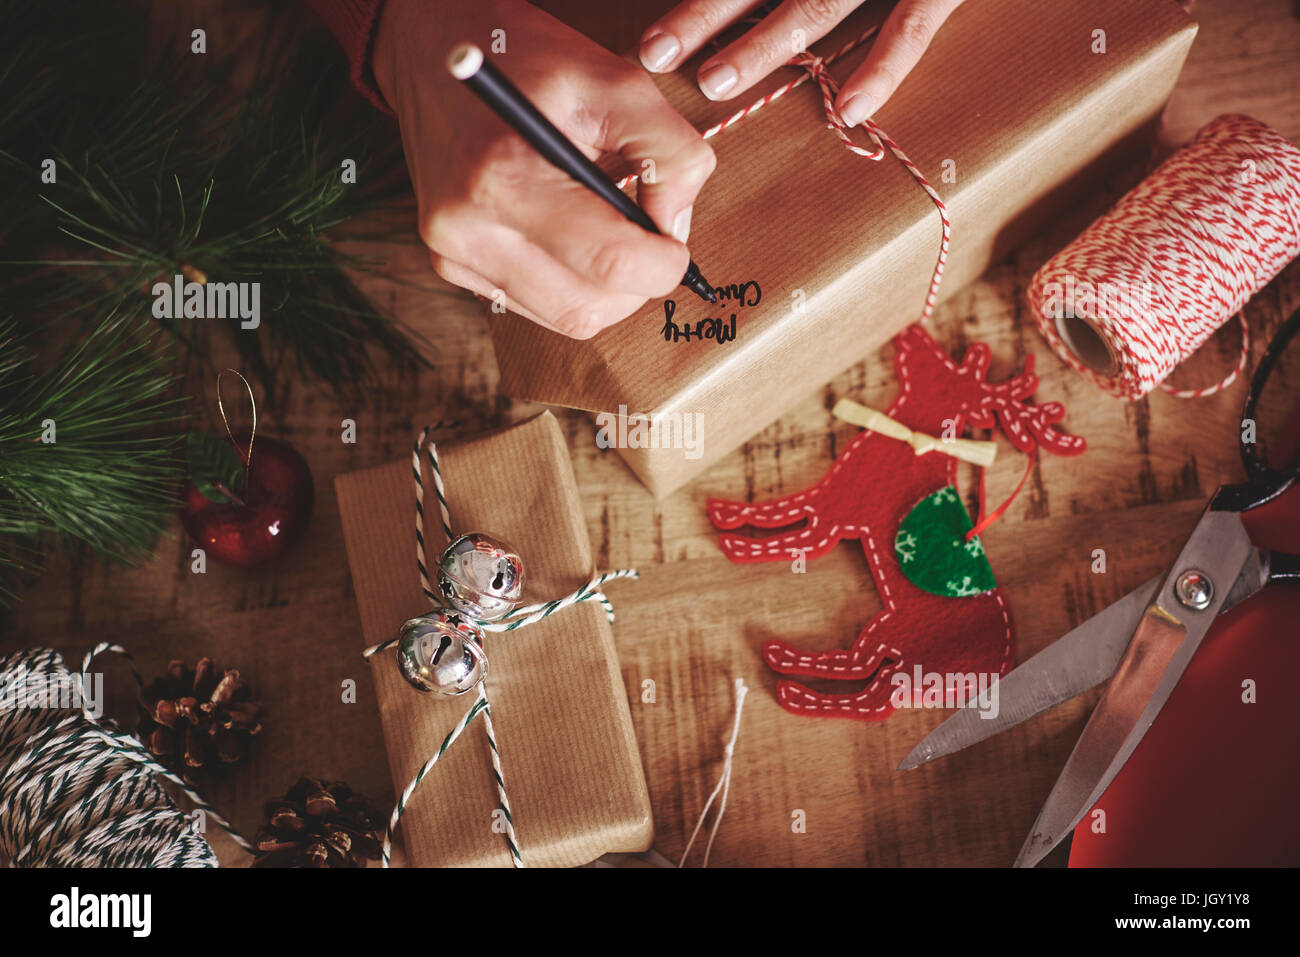 Woman labelling christmas gift - Stock Image